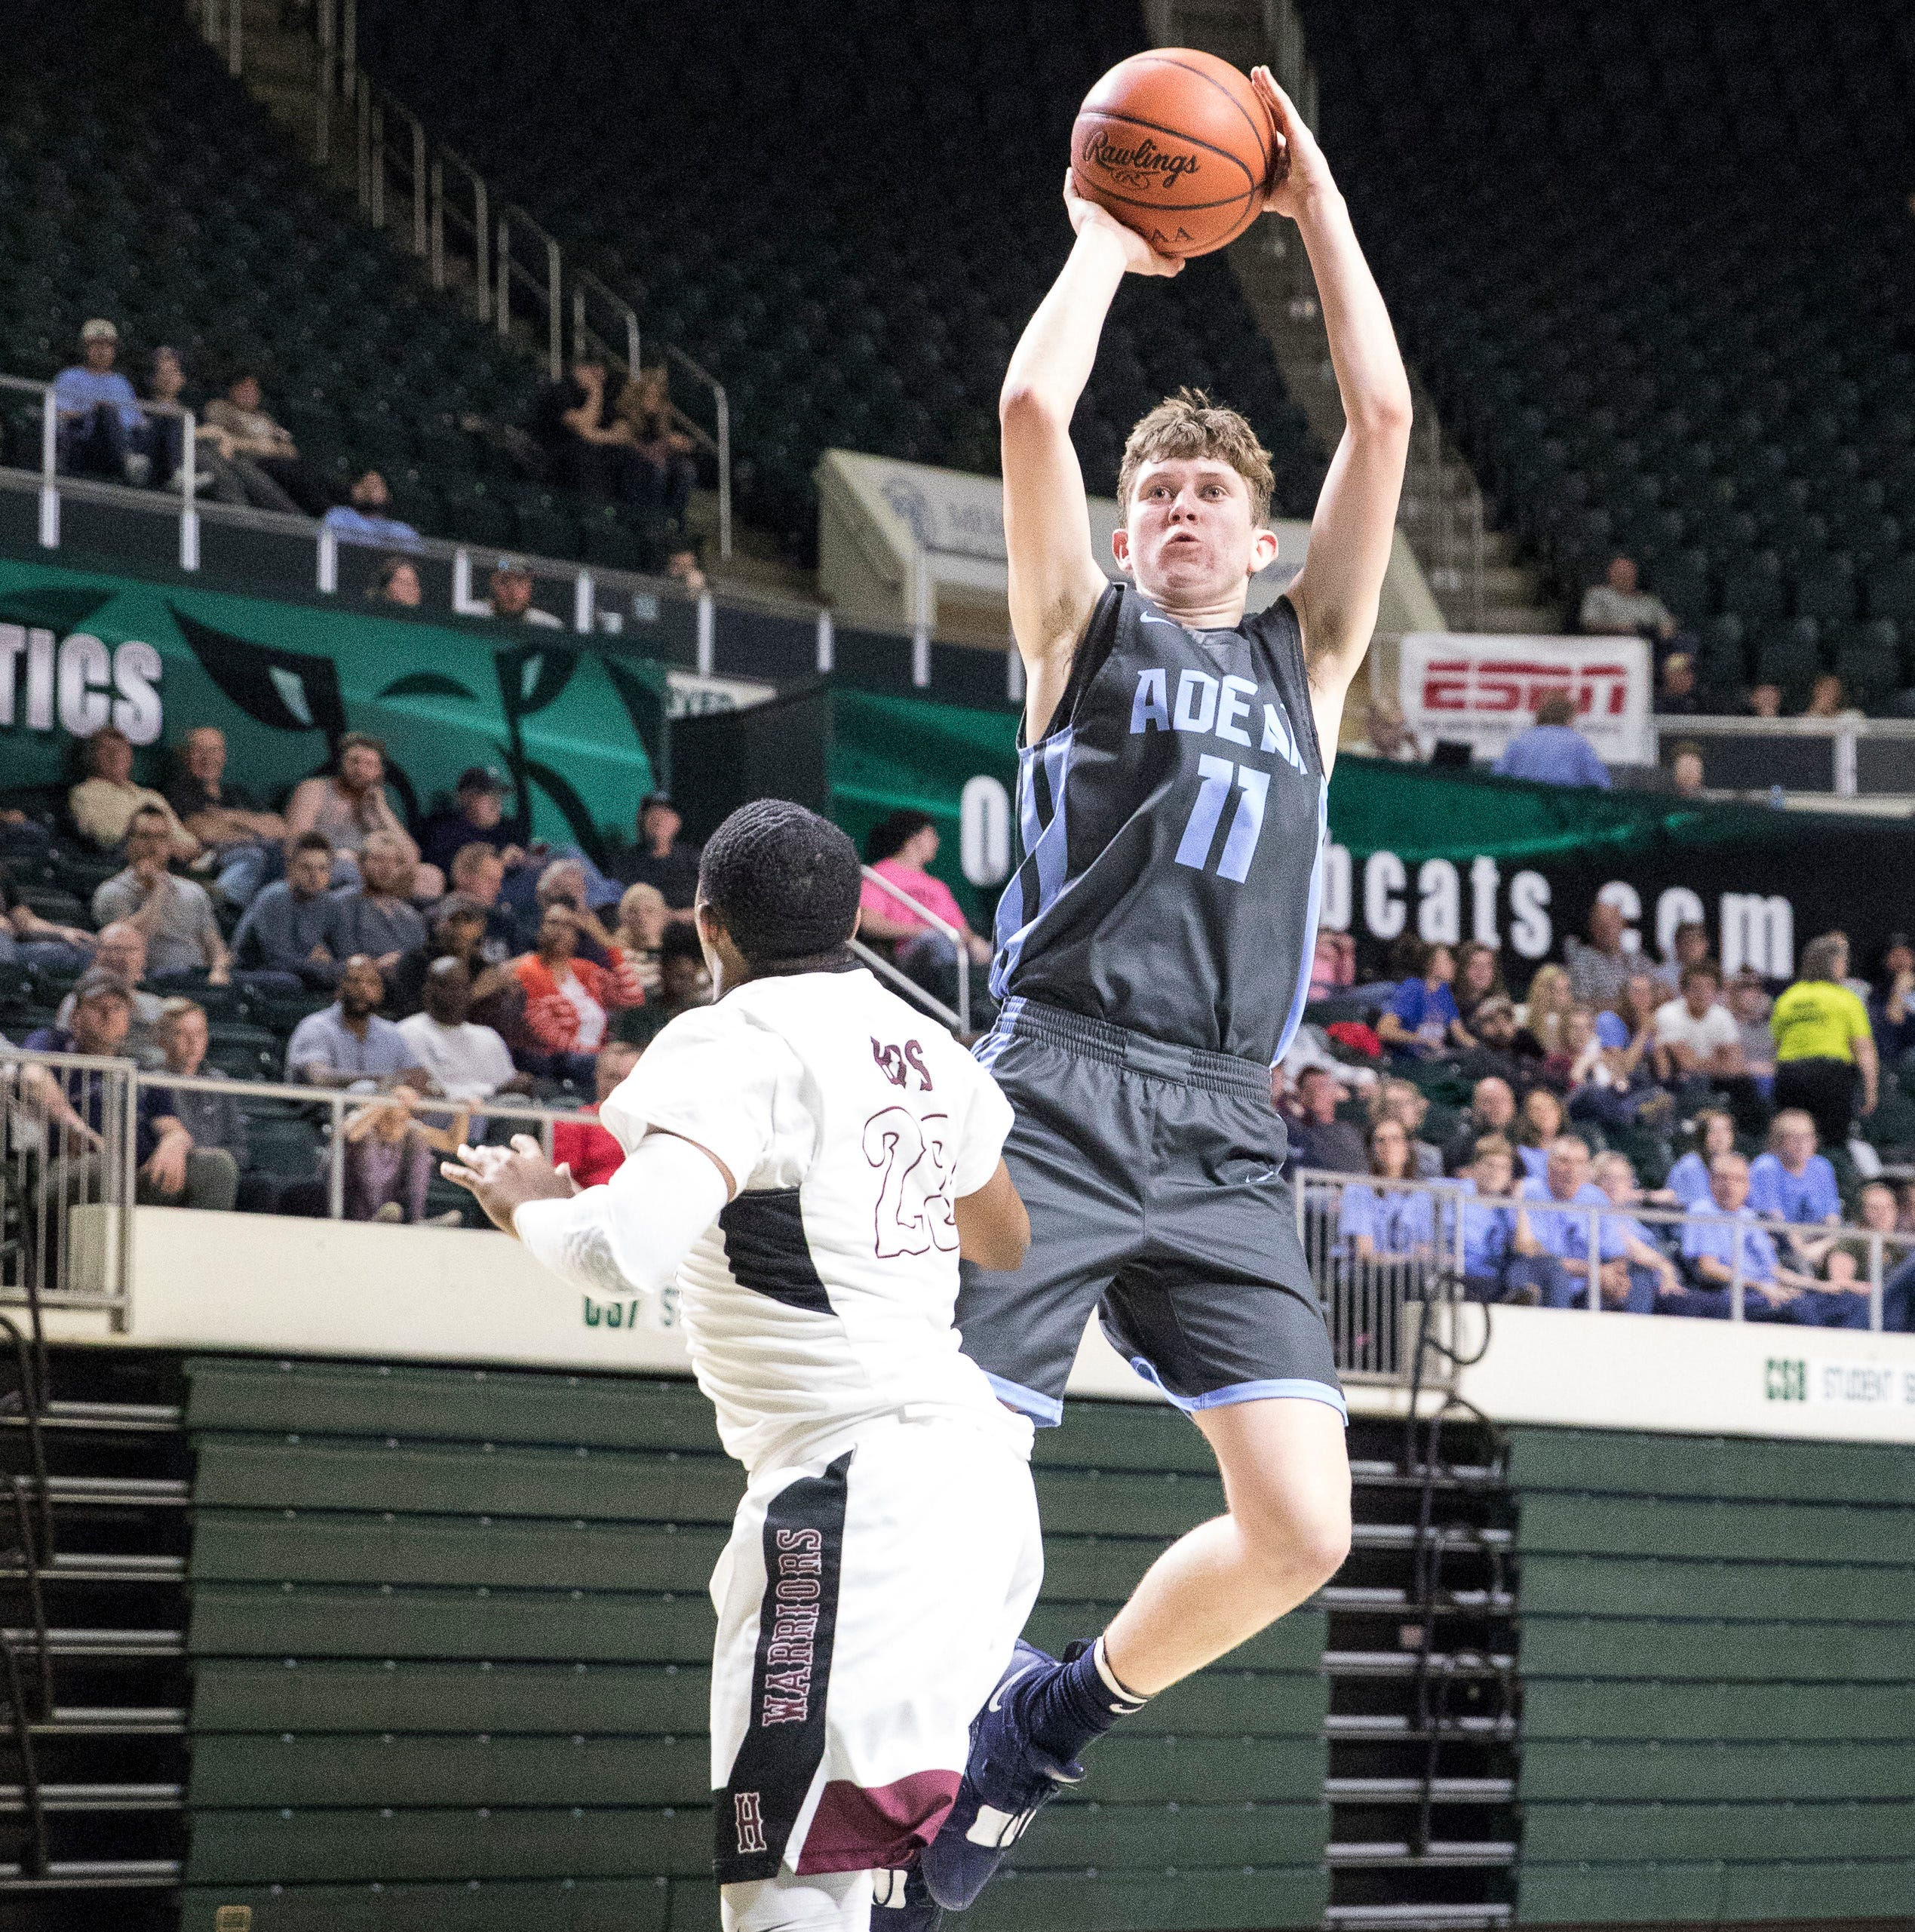 OHIO HS BOYS BASKETBALL: Adena falls 79-38 in regional semifinal to Harvest Prep